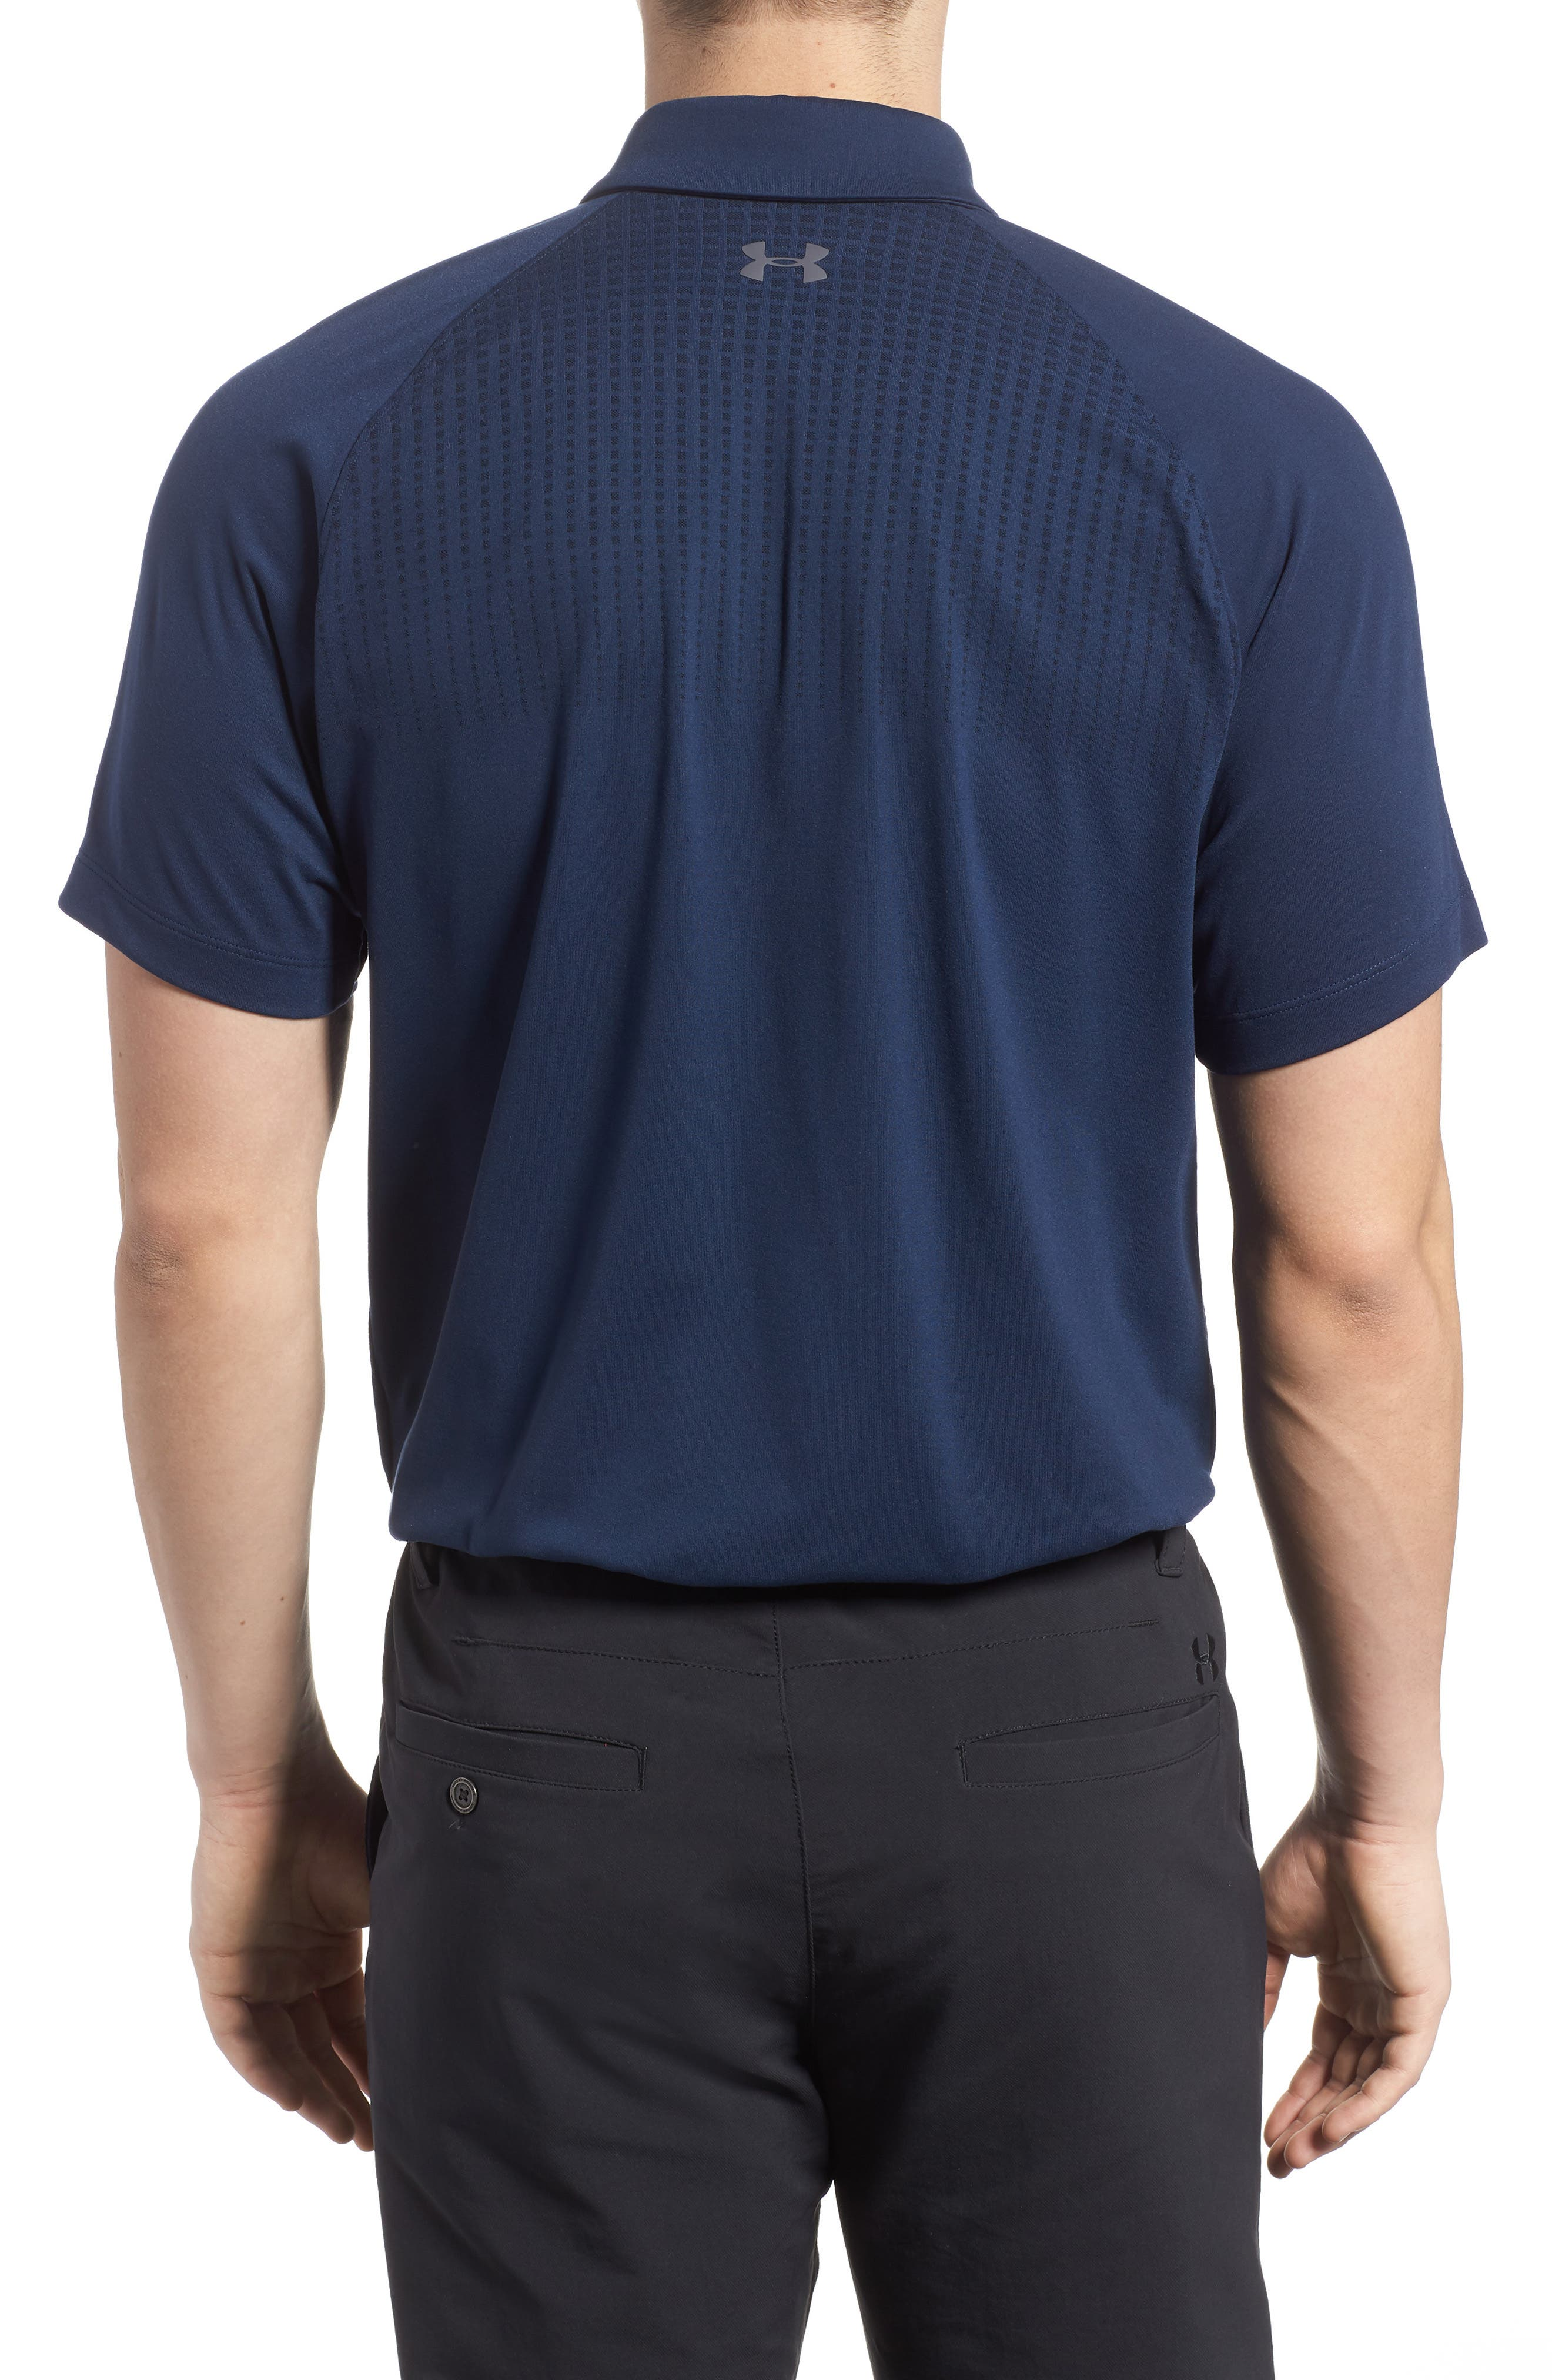 Threadborne Outer Glow Regular Fit Polo Shirt,                             Alternate thumbnail 2, color,                             408